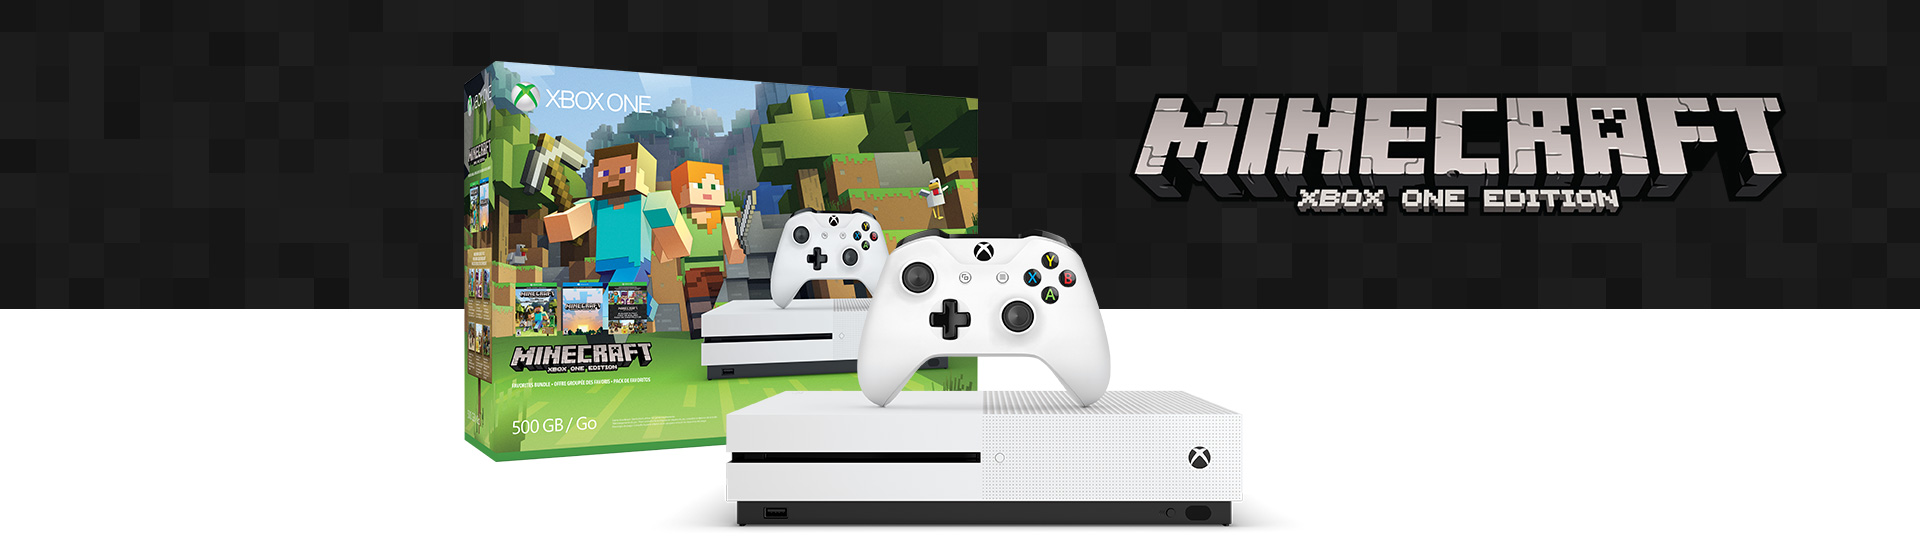 Xbox One S Gra Play